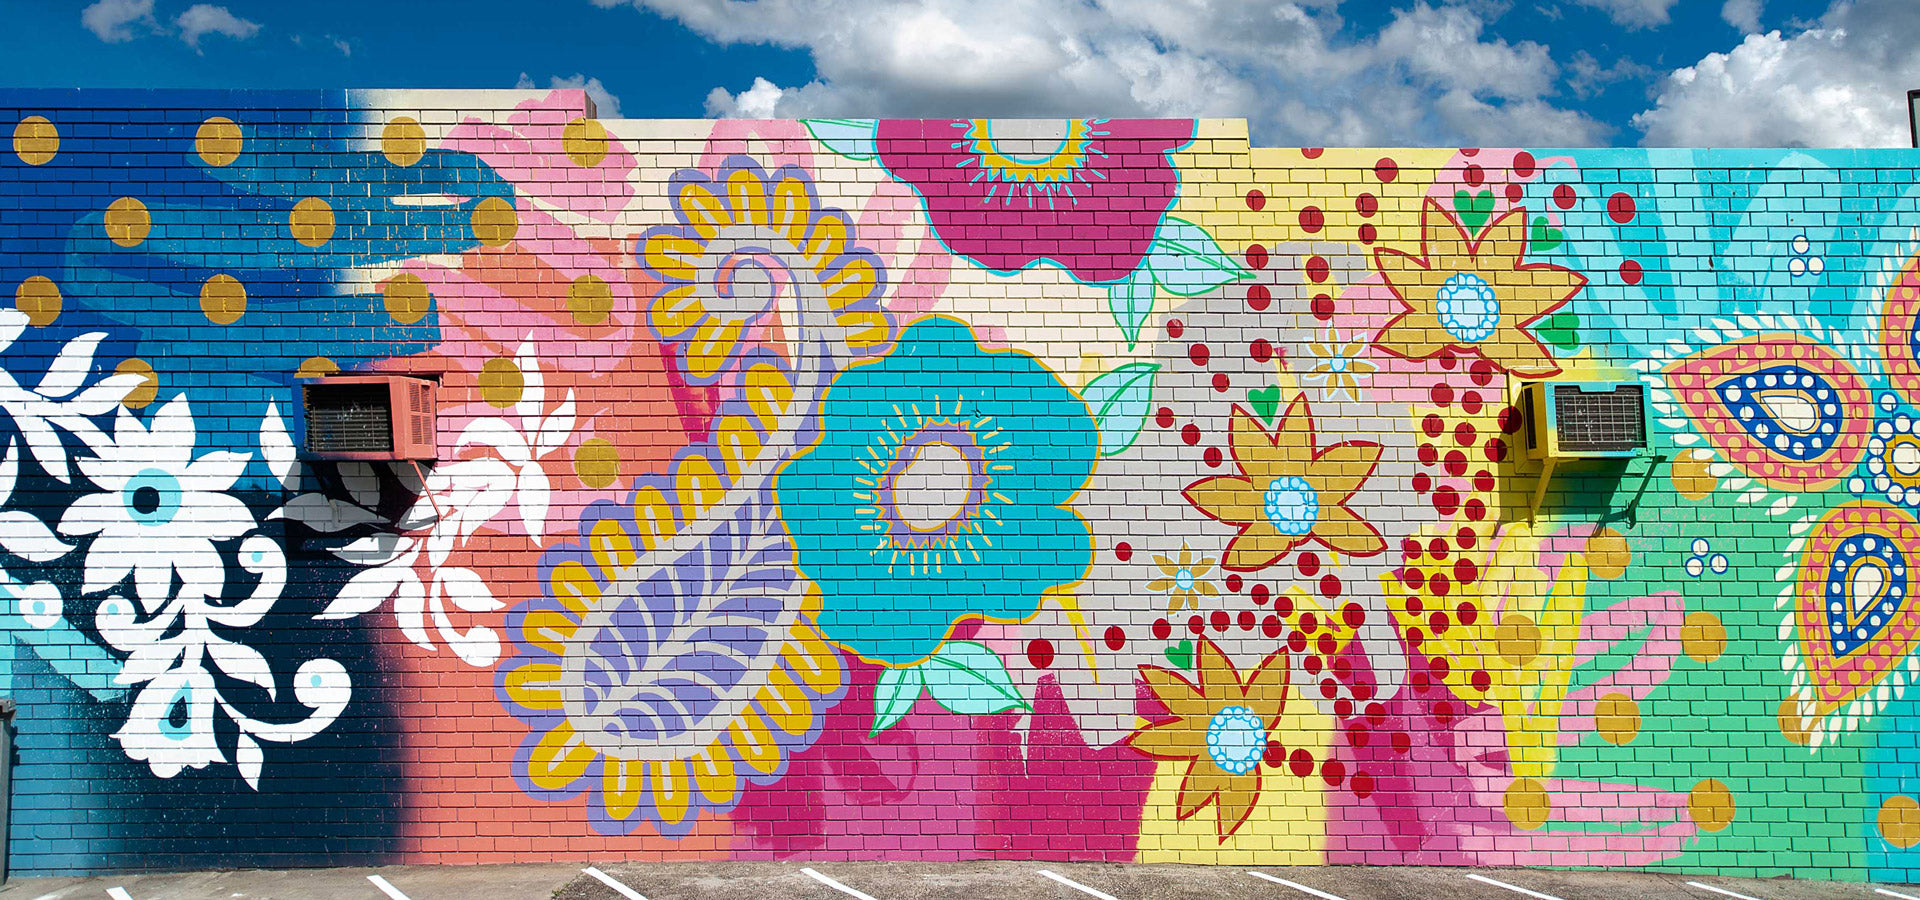 Adornment - Little India Precinct Mural